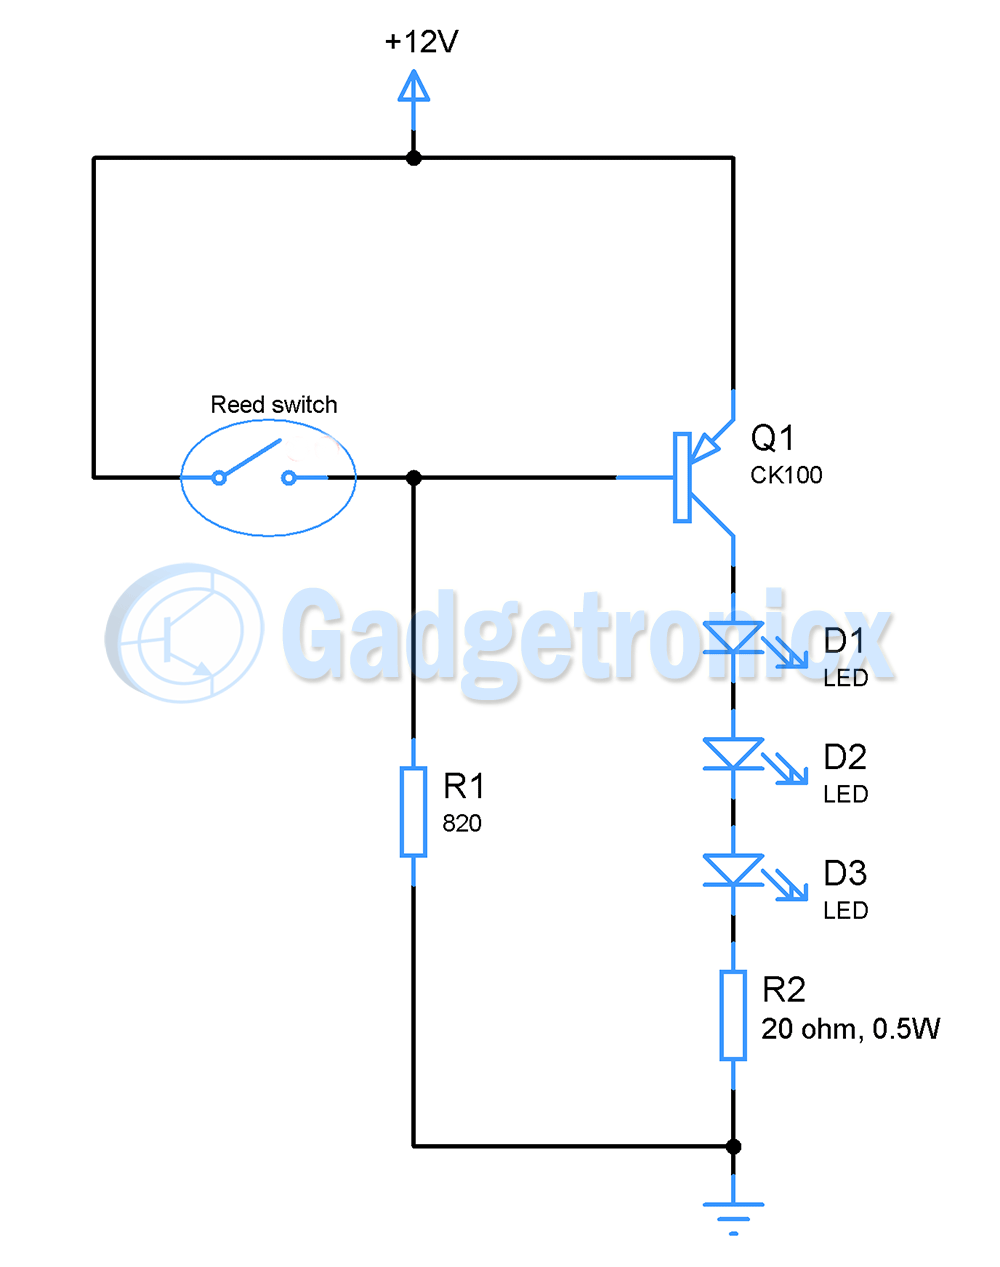 cupboard lighting circuit using transistor electronic circuits light by whistle electronic project circuit diagram [ 1000 x 1267 Pixel ]